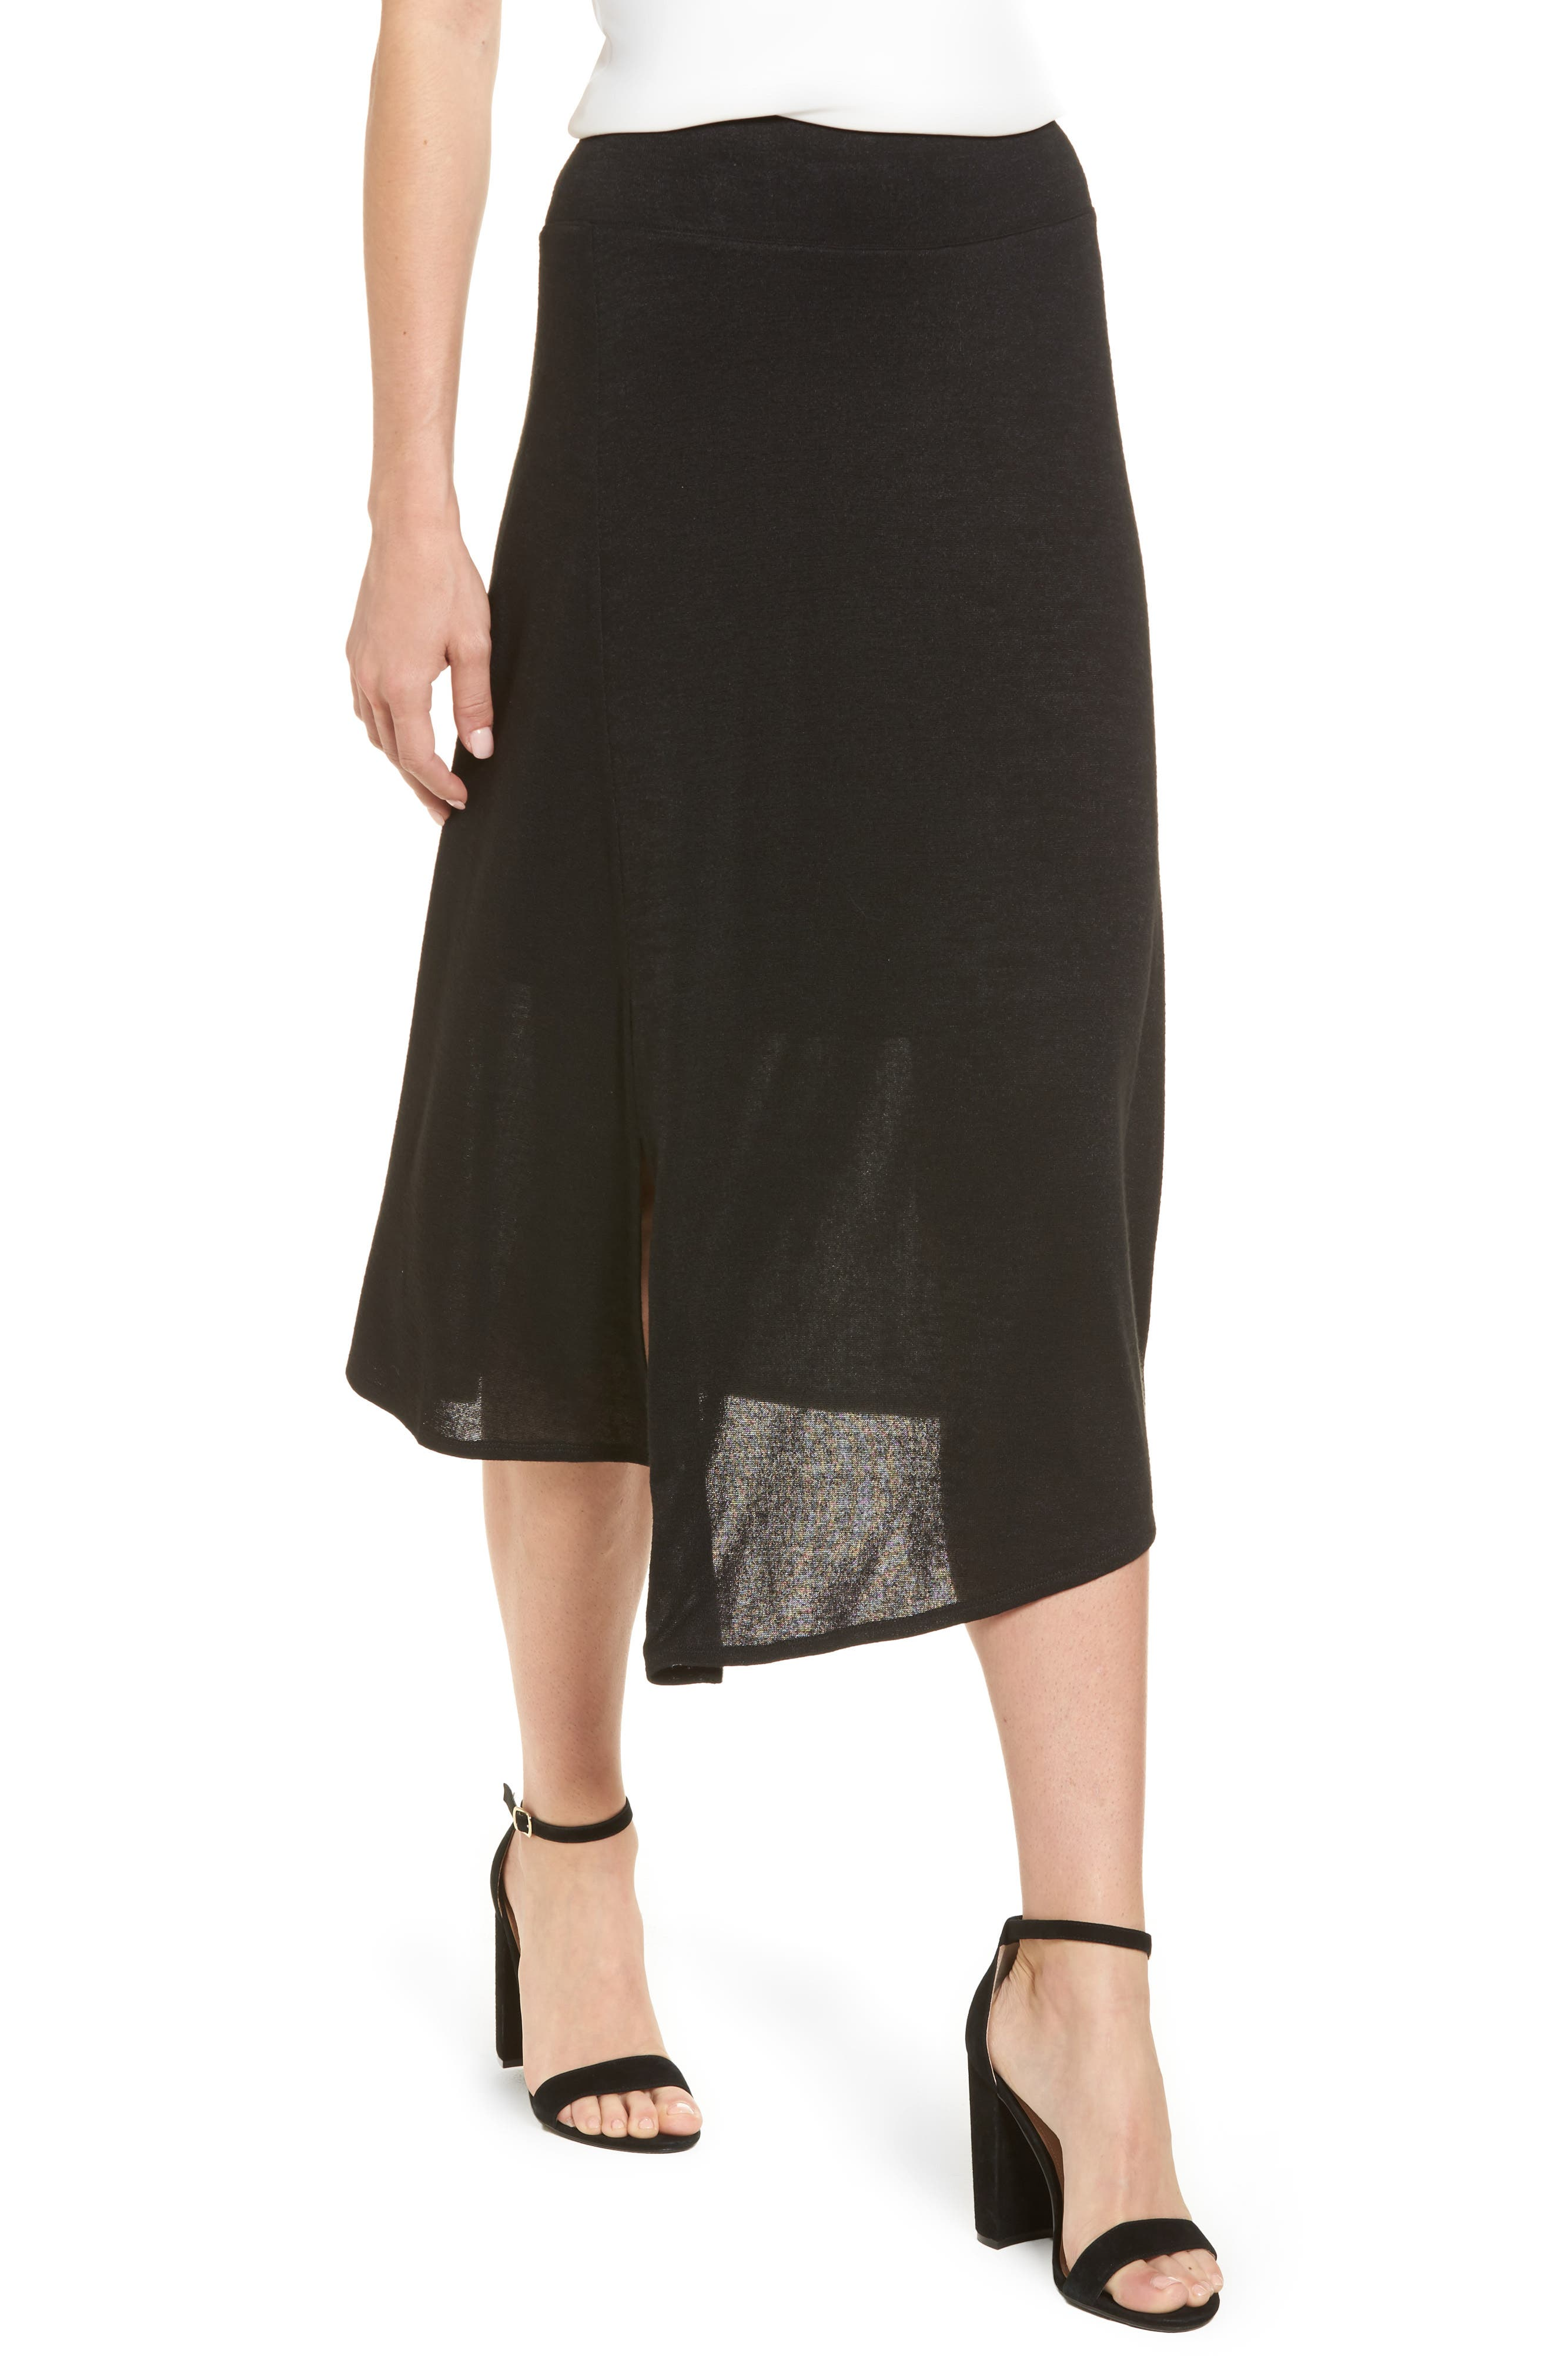 Nic + Zoe Every Occasion Faux Wrap Skirt,                             Alternate thumbnail 4, color,                             Black Onyx